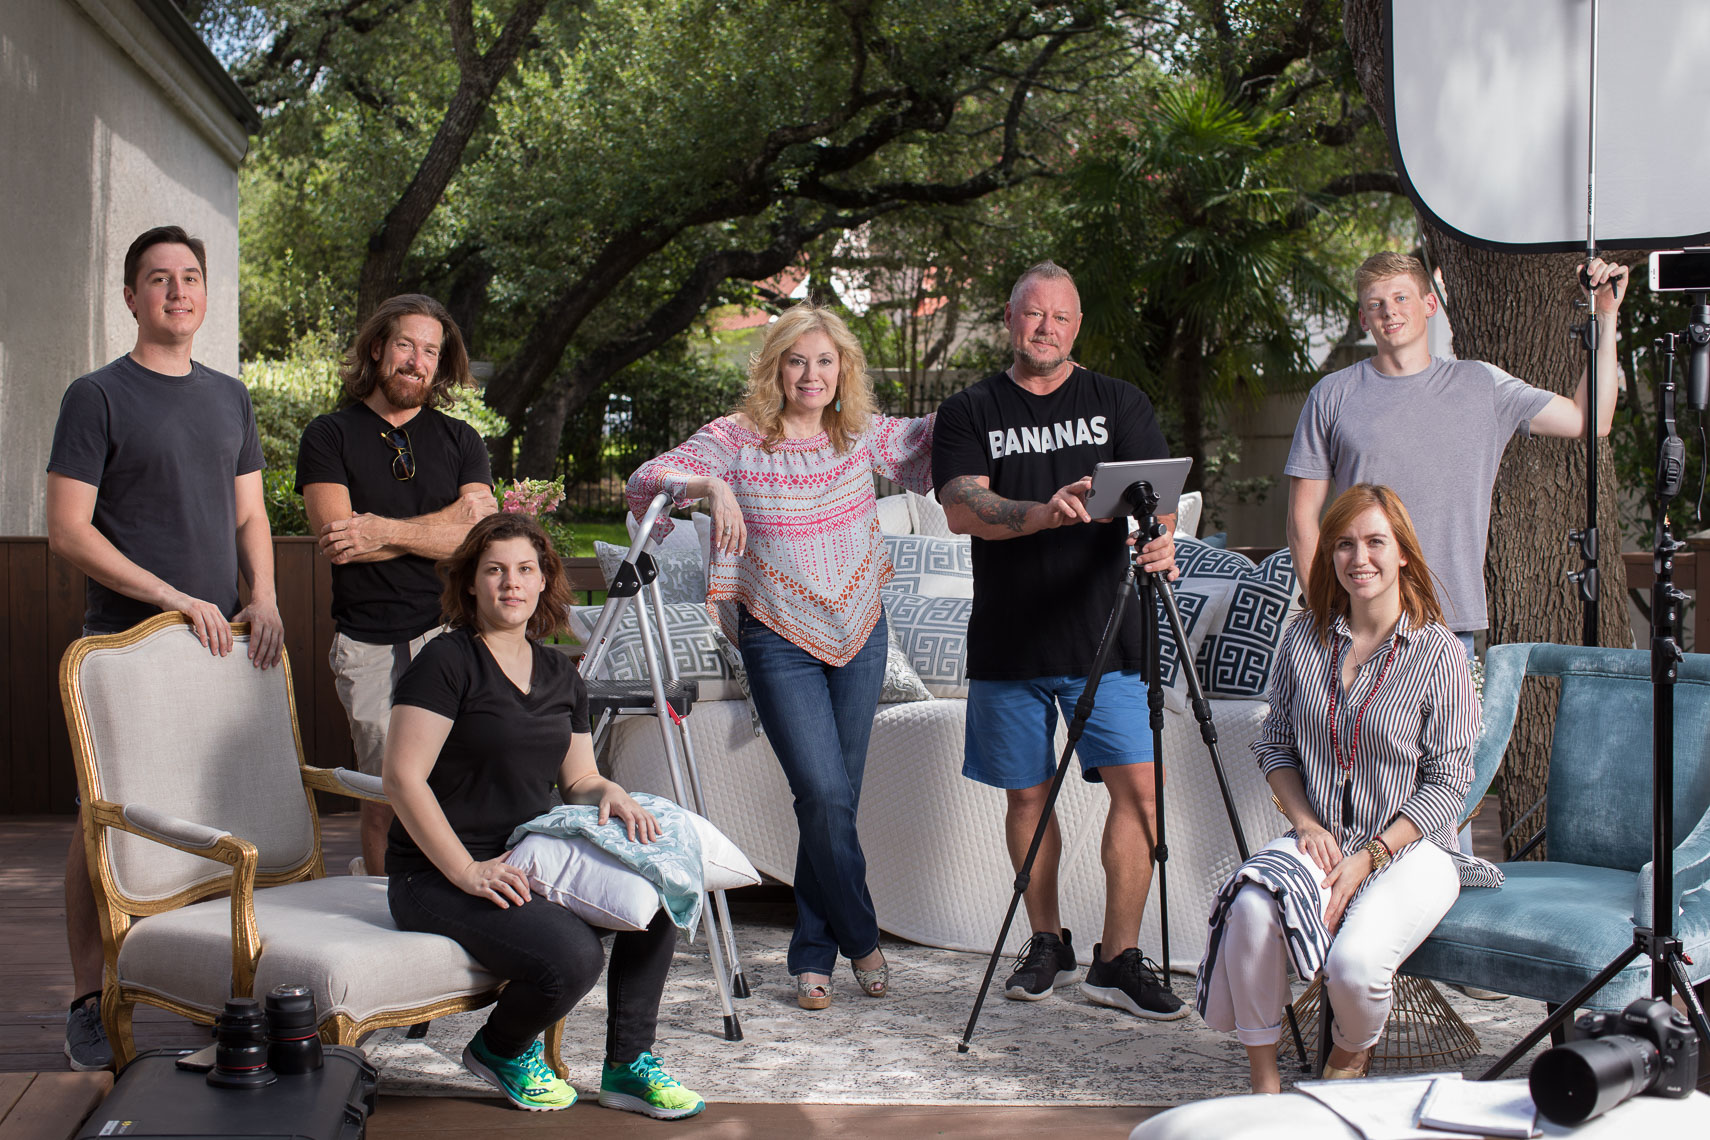 behind-th-scenes-commercial-photographer-san-antonio-jason-risner-photography-6836